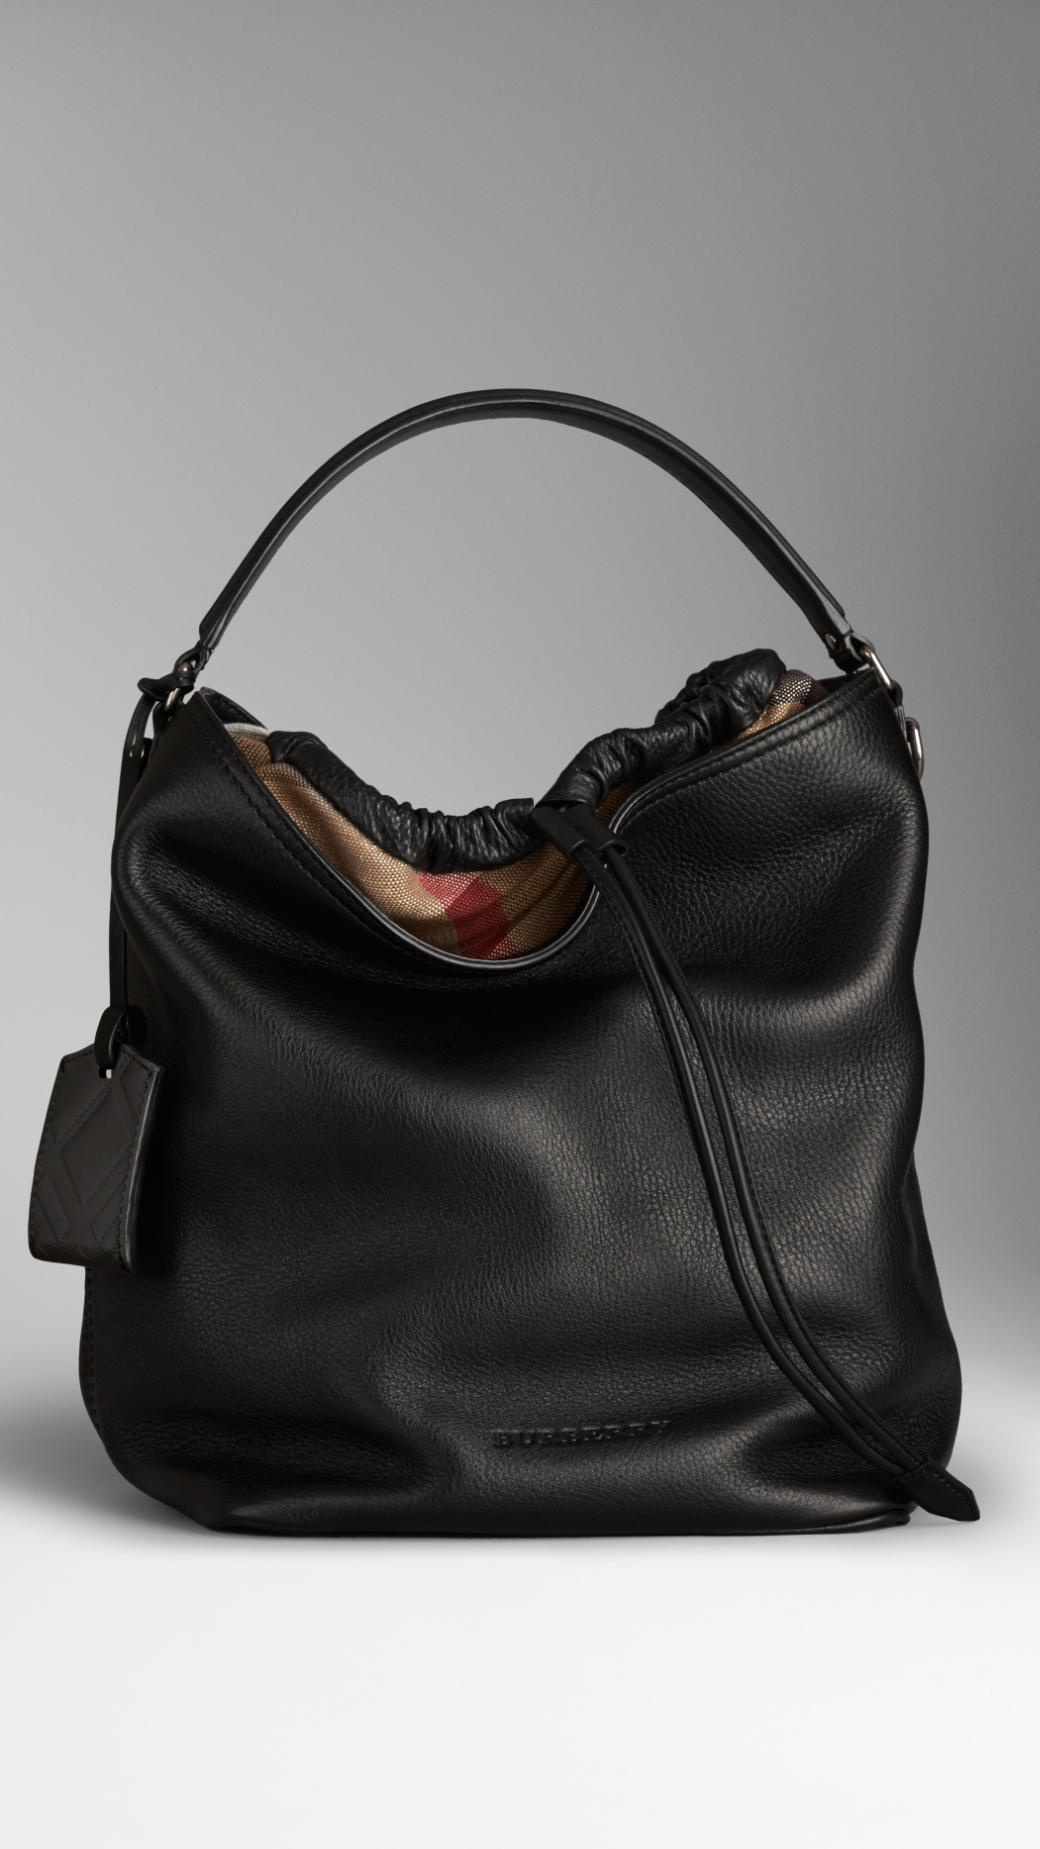 Burberry Bag Hobo